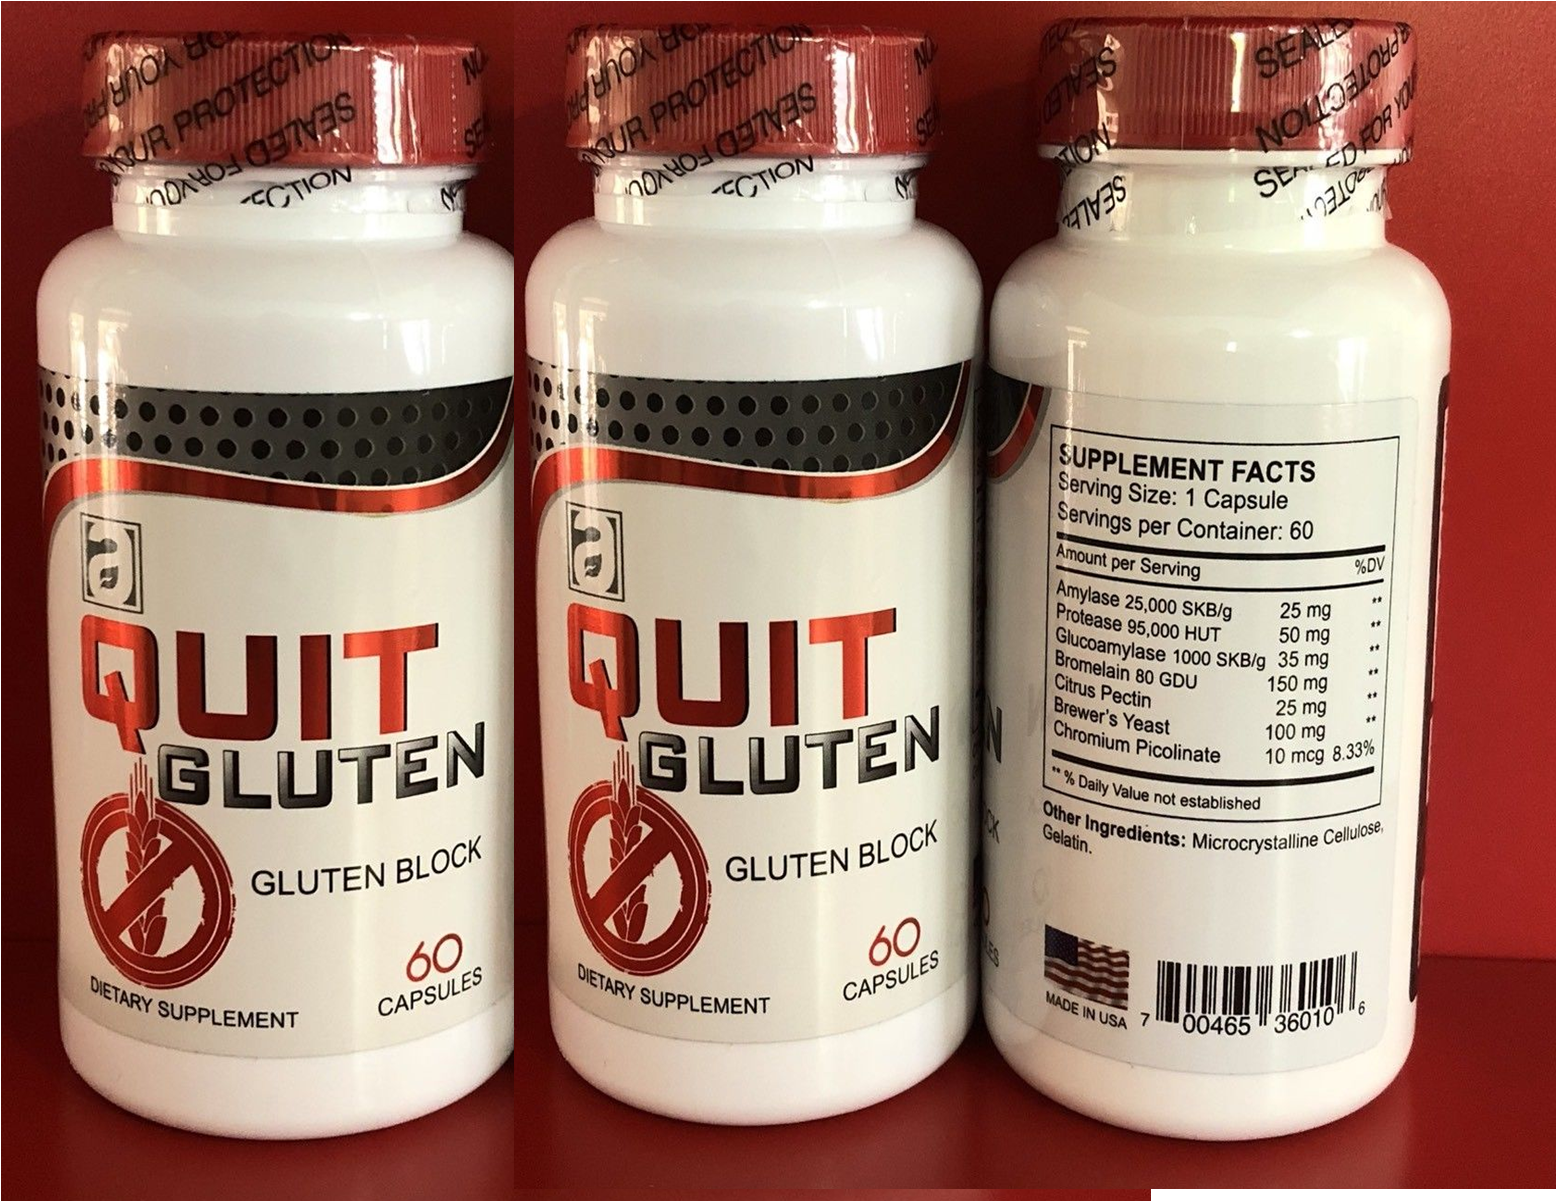 Quit Gluten Block Free 40 % Off 120 capsules Dietary Supplement Easy Digestion